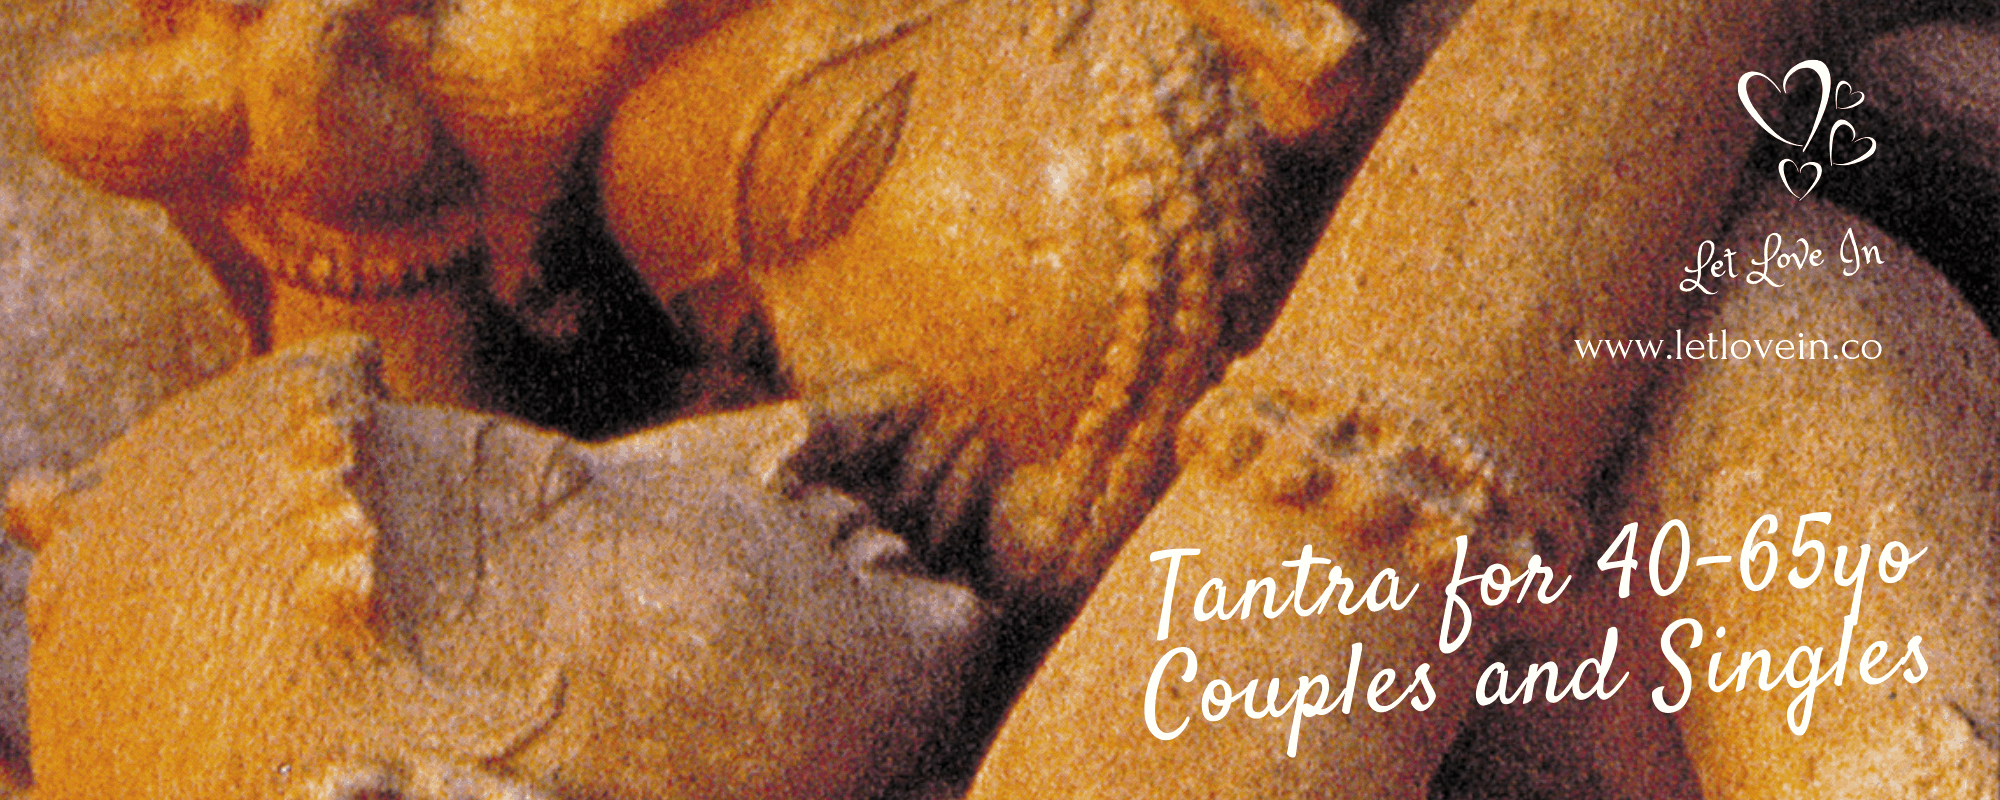 What is Tantra? Tantra teaches us skills of increased presence, connection and energy flow.